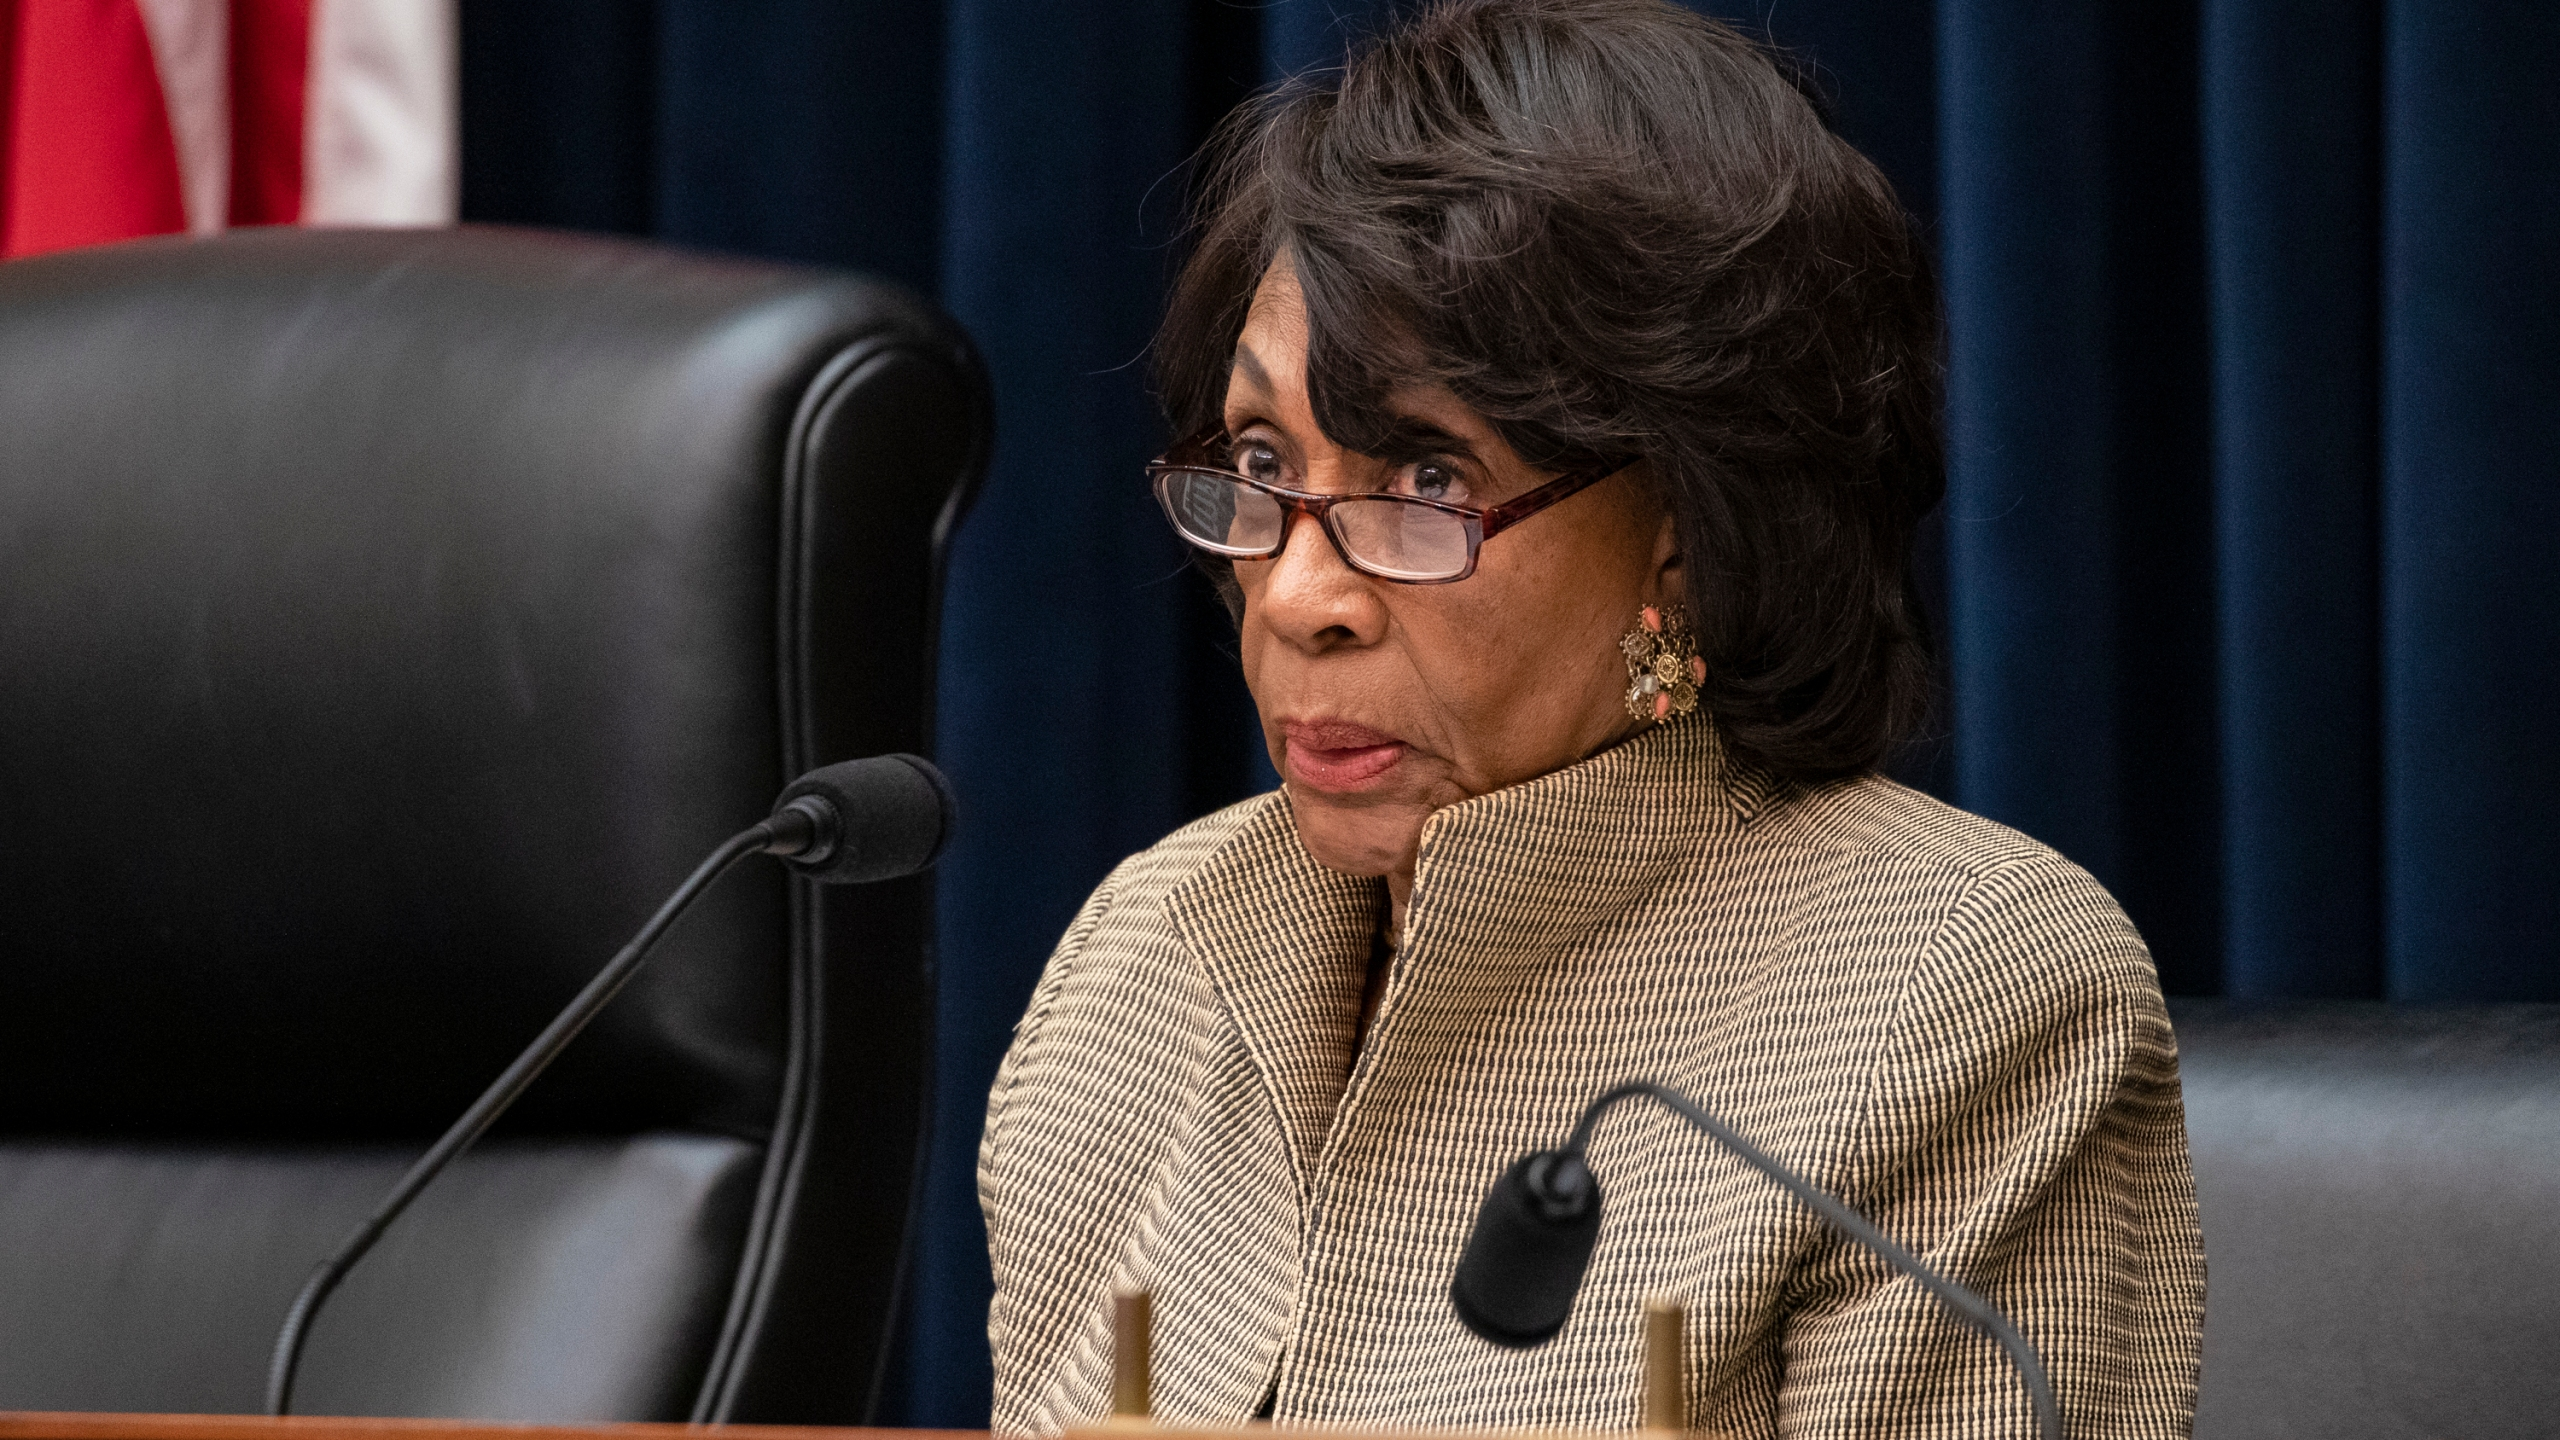 Chairwoman Rep. Maxine Waters (D-CA) questions former members of the Wells Fargo's Board of Directors Elizabeth Duke and James Quigley during a House Financial Services Committee hearing on March 11, 2020. (Samuel Corum/Getty Images)